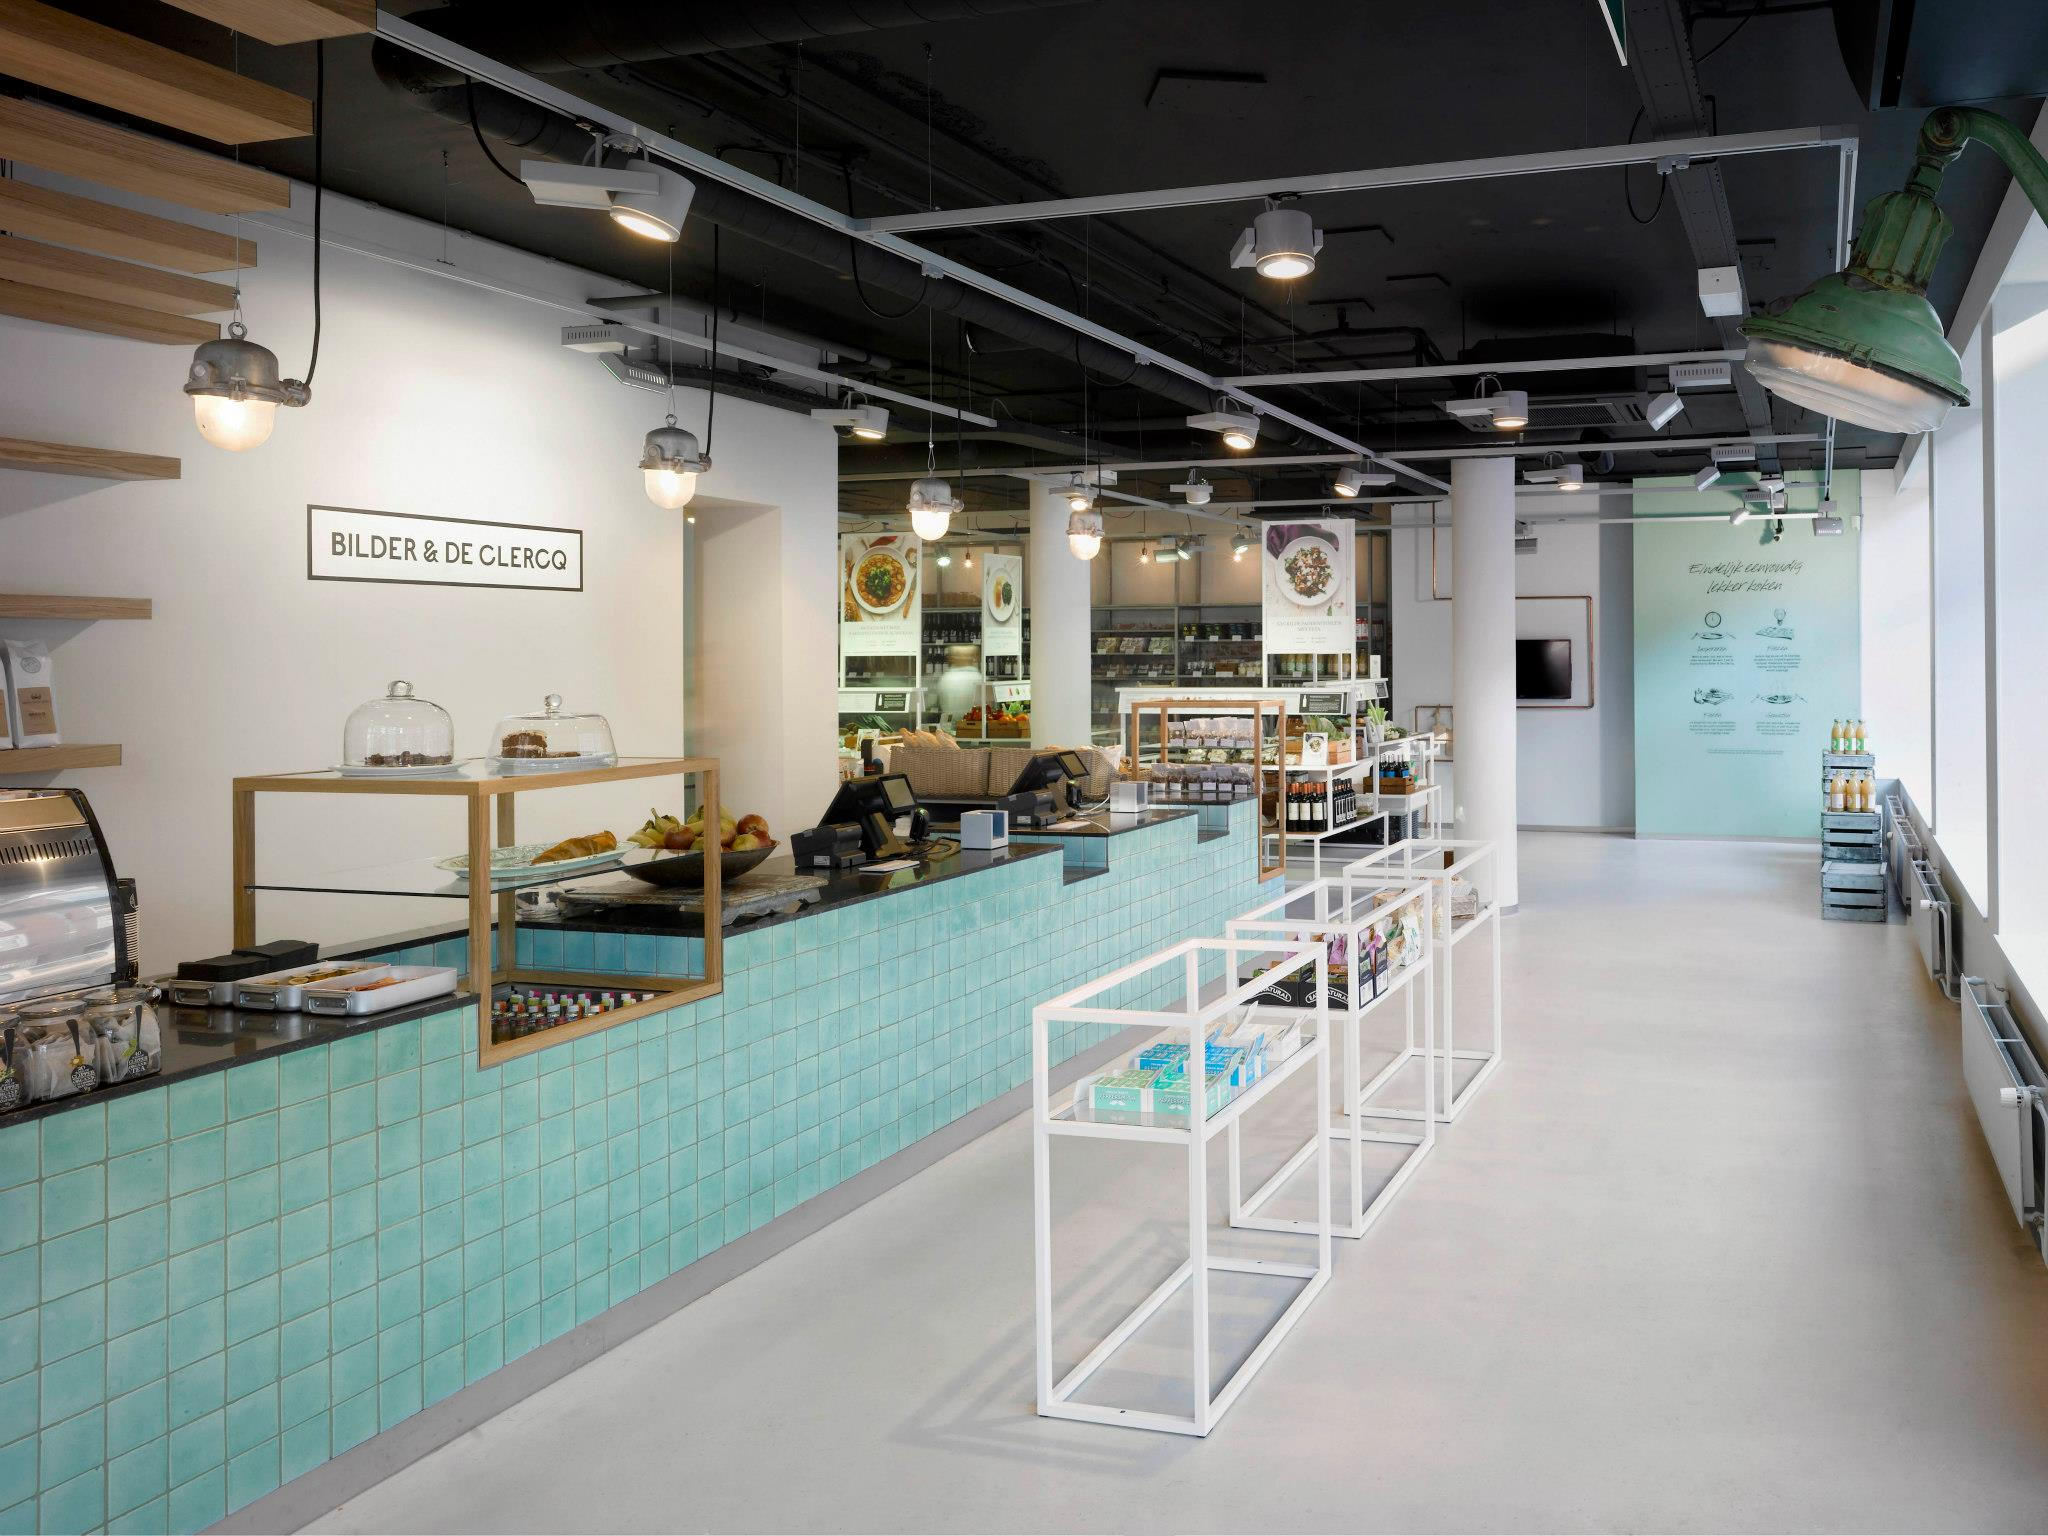 Bilder en de Clercq Amsterdam: a new grocery concept in Amsterdam West